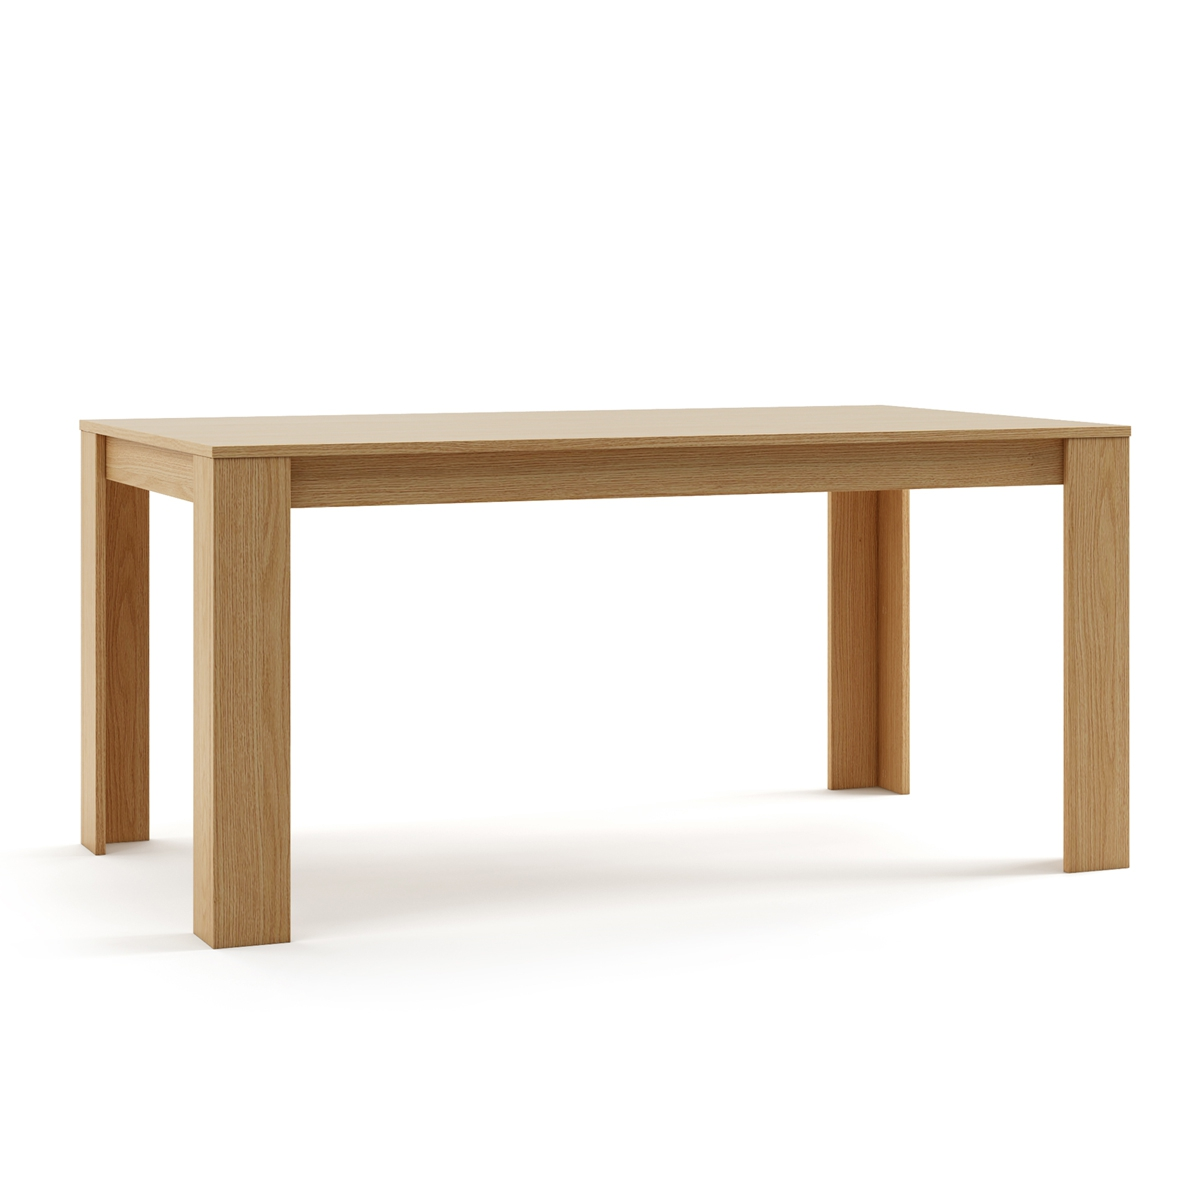 Table For Dining Room's Design Rectangular Ideal Salon Kitchen Custom Wood Finishes Mdf Oak Color Natural 160x90x75 Cm